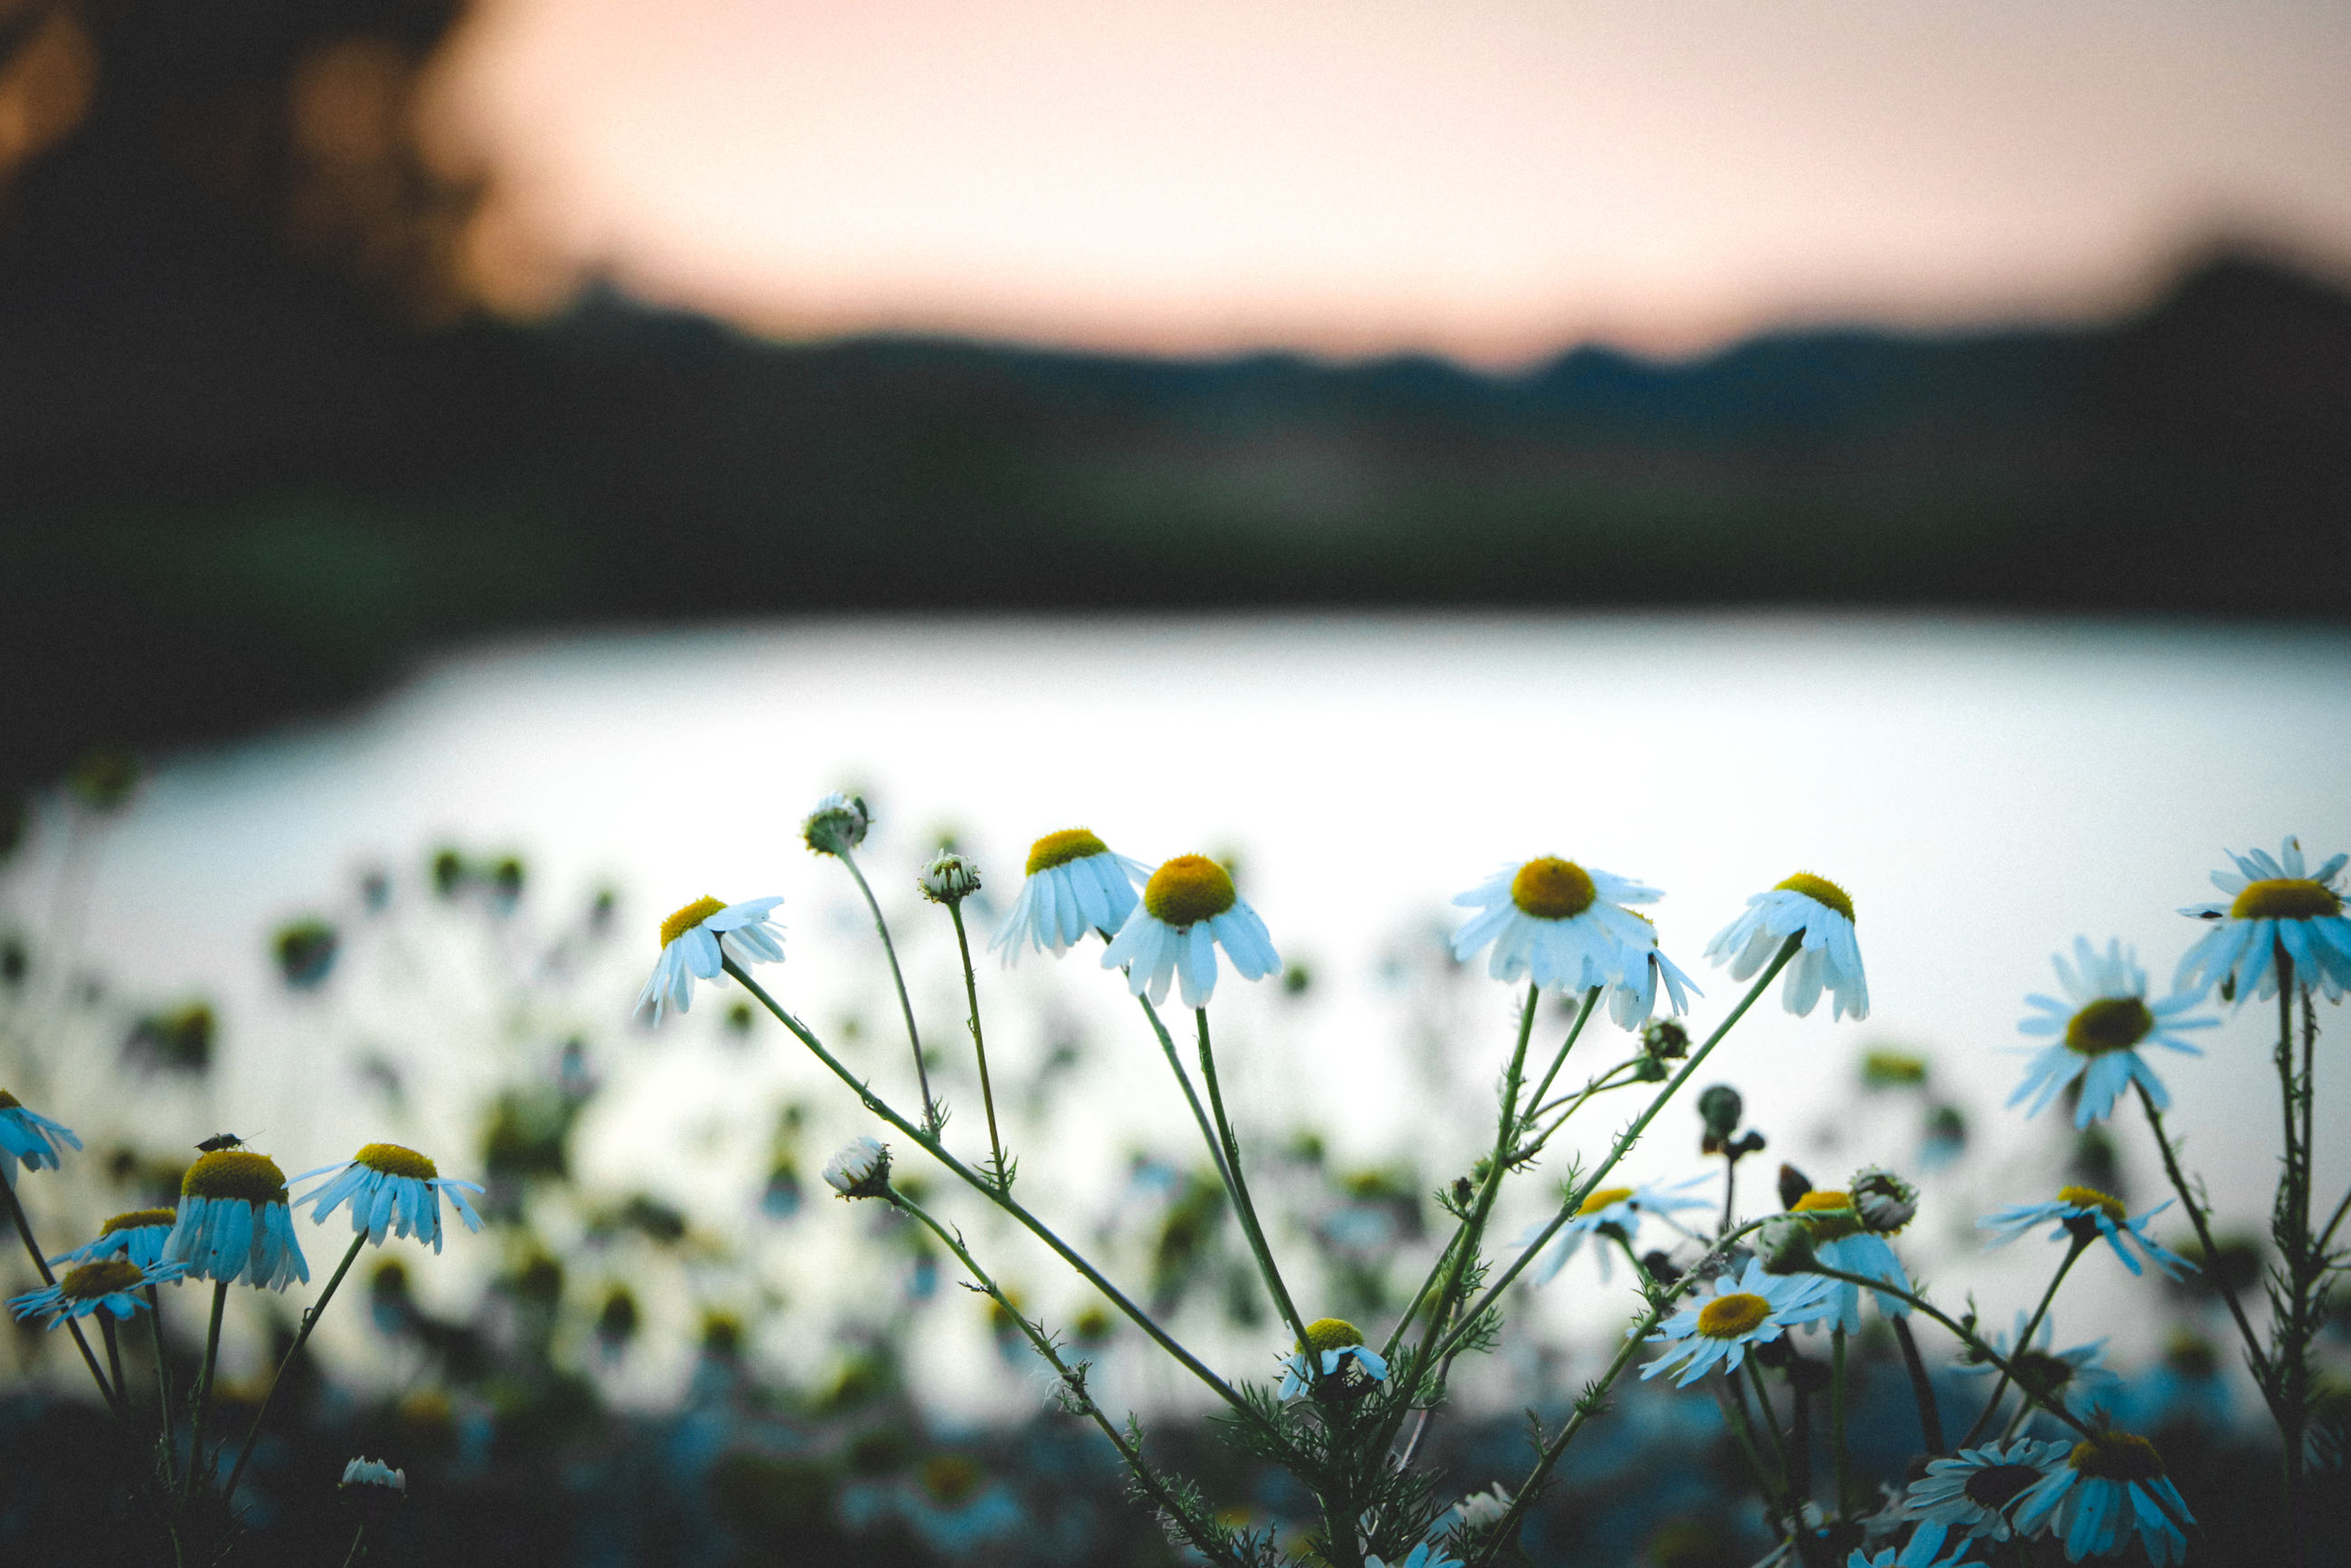 plant, flower, nature, flowering plant, sunlight, beauty in nature, freshness, green, macro photography, sky, grass, morning, no people, water, landscape, leaf, selective focus, blue, tranquility, environment, close-up, land, focus on foreground, springtime, reflection, yellow, outdoors, wildflower, scenics - nature, meadow, growth, fragility, field, plain, summer, tranquil scene, blossom, light, rural scene, lake, multi colored, flower head, day, non-urban scene, twilight, daisy